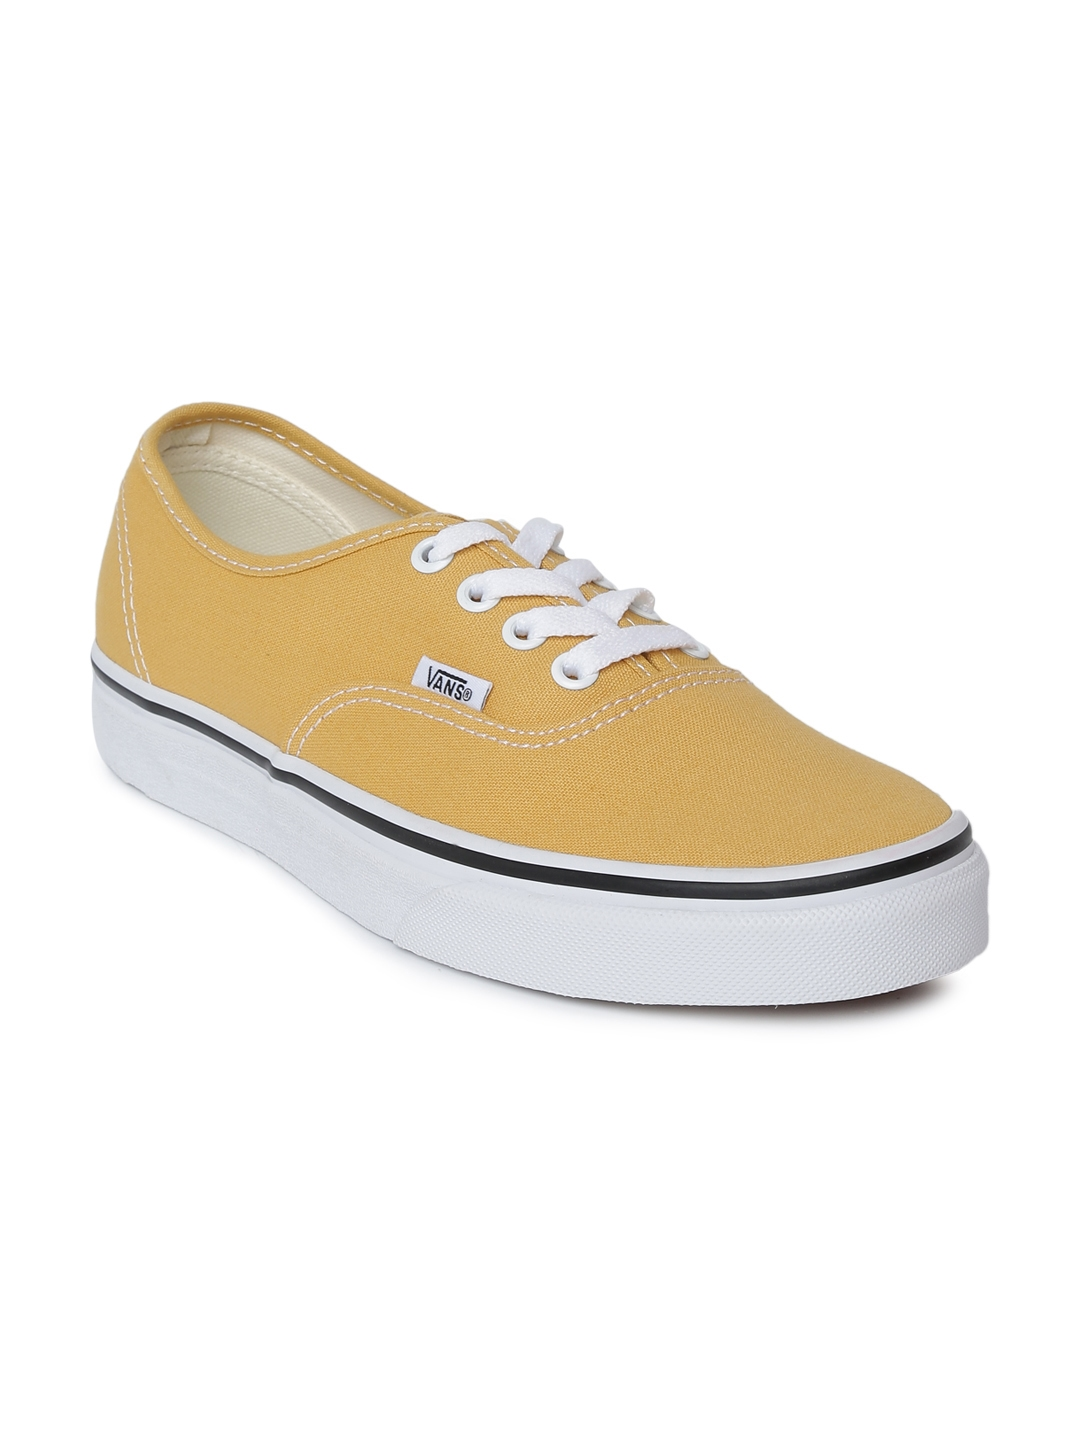 2698bedbb86cfa Buy Vans Unisex Mustard Yellow Authentic Sneakers - Casual Shoes for ...